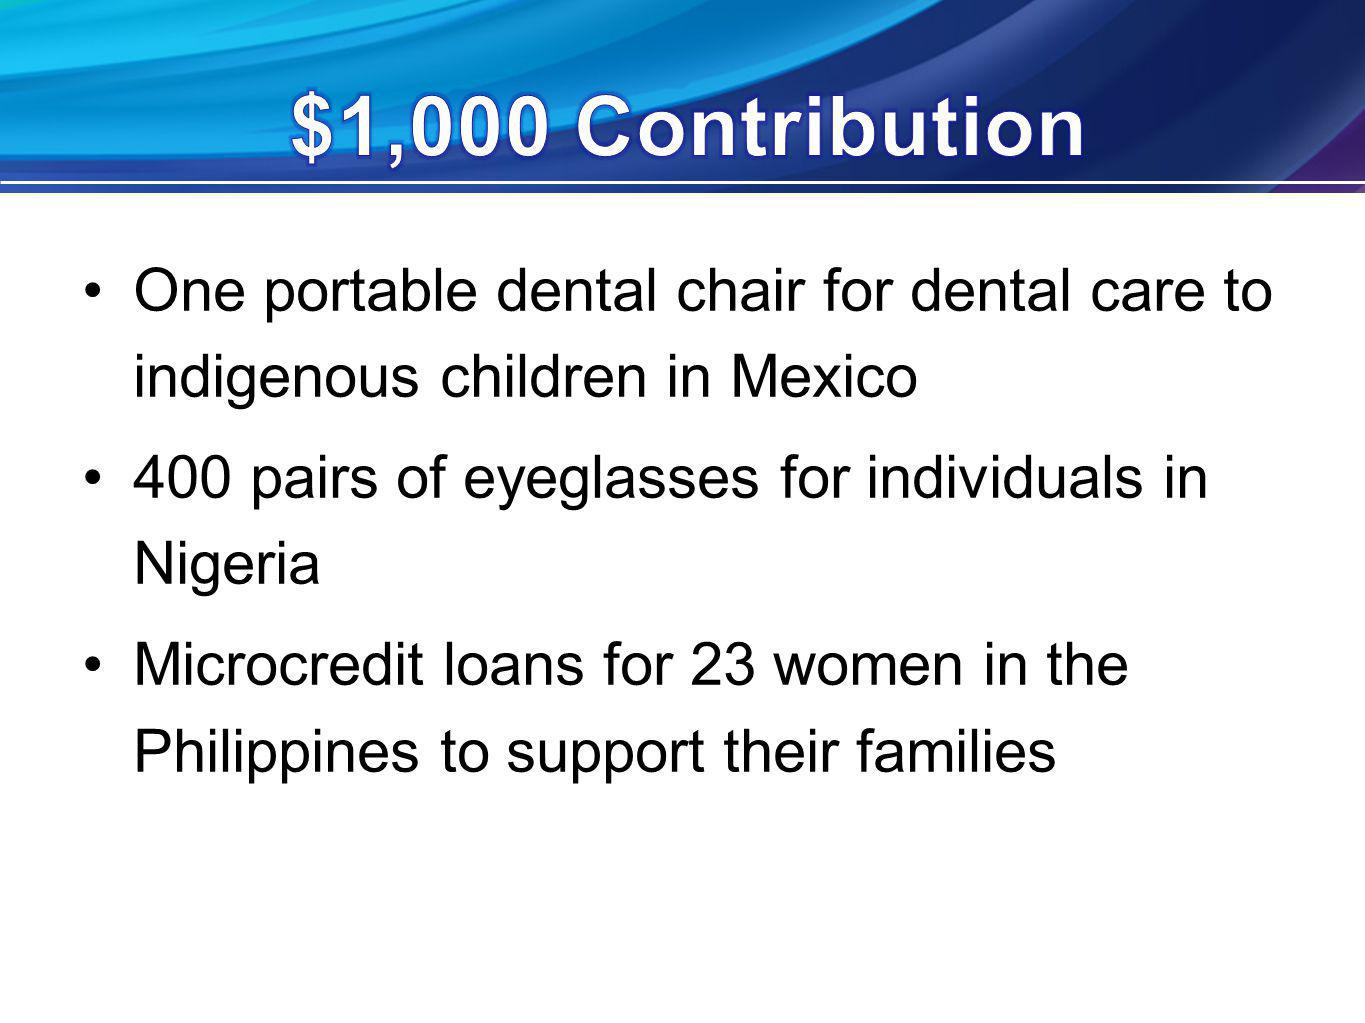 One portable dental chair for dental care to indigenous children in Mexico 400 pairs of eyeglasses for individuals in Nigeria Microcredit loans for 23 women in the Philippines to support their families